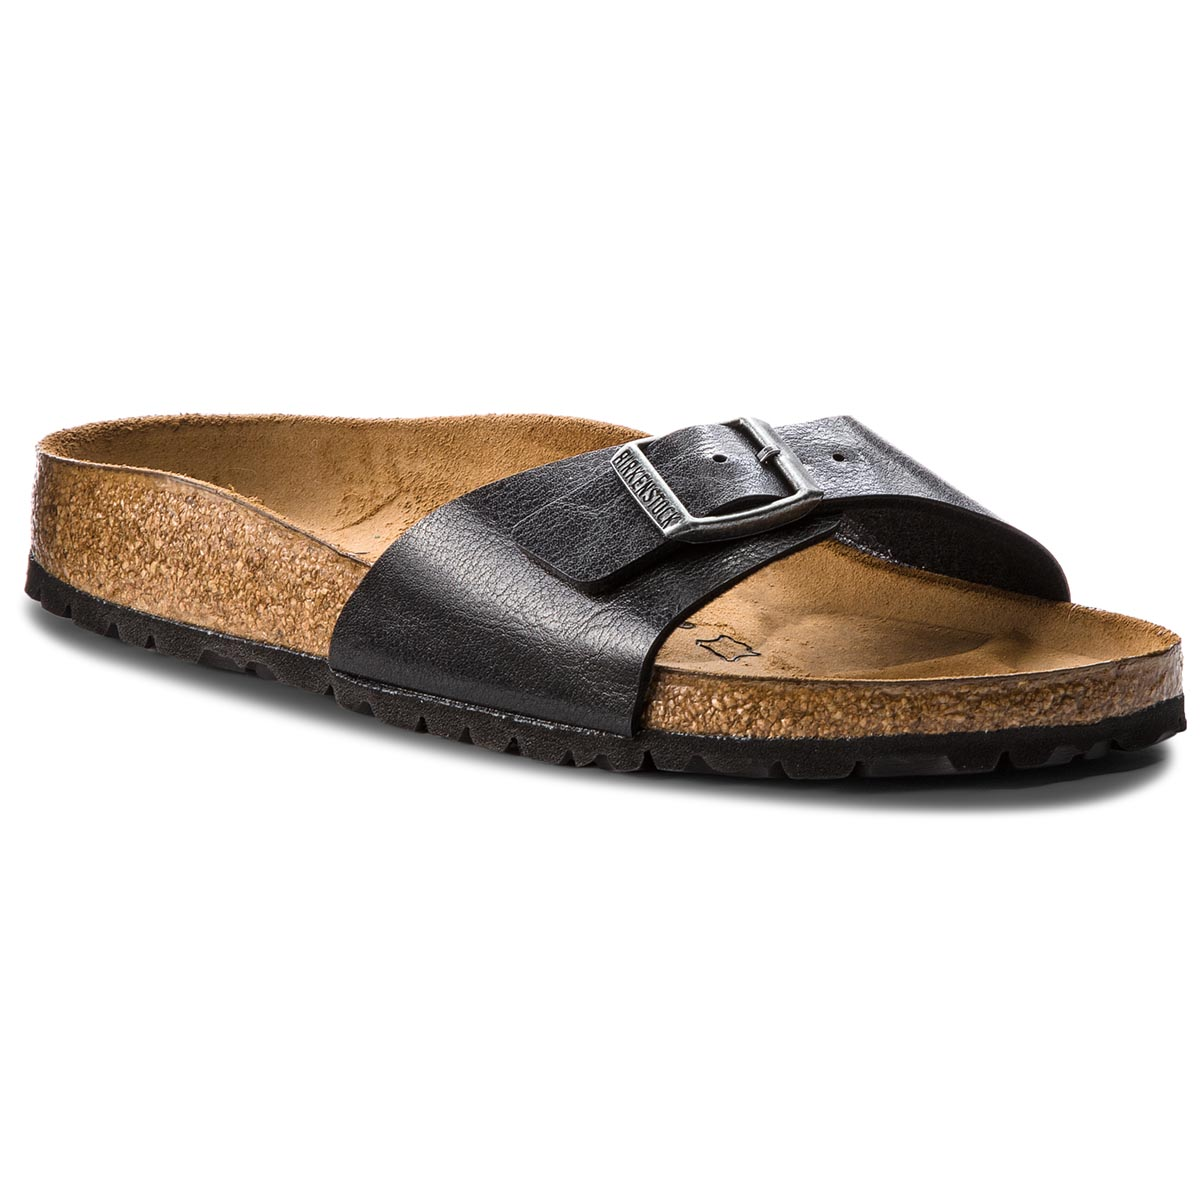 Klapki BIRKENSTOCK - Madrid Bs 0239673 Graceful Licorice